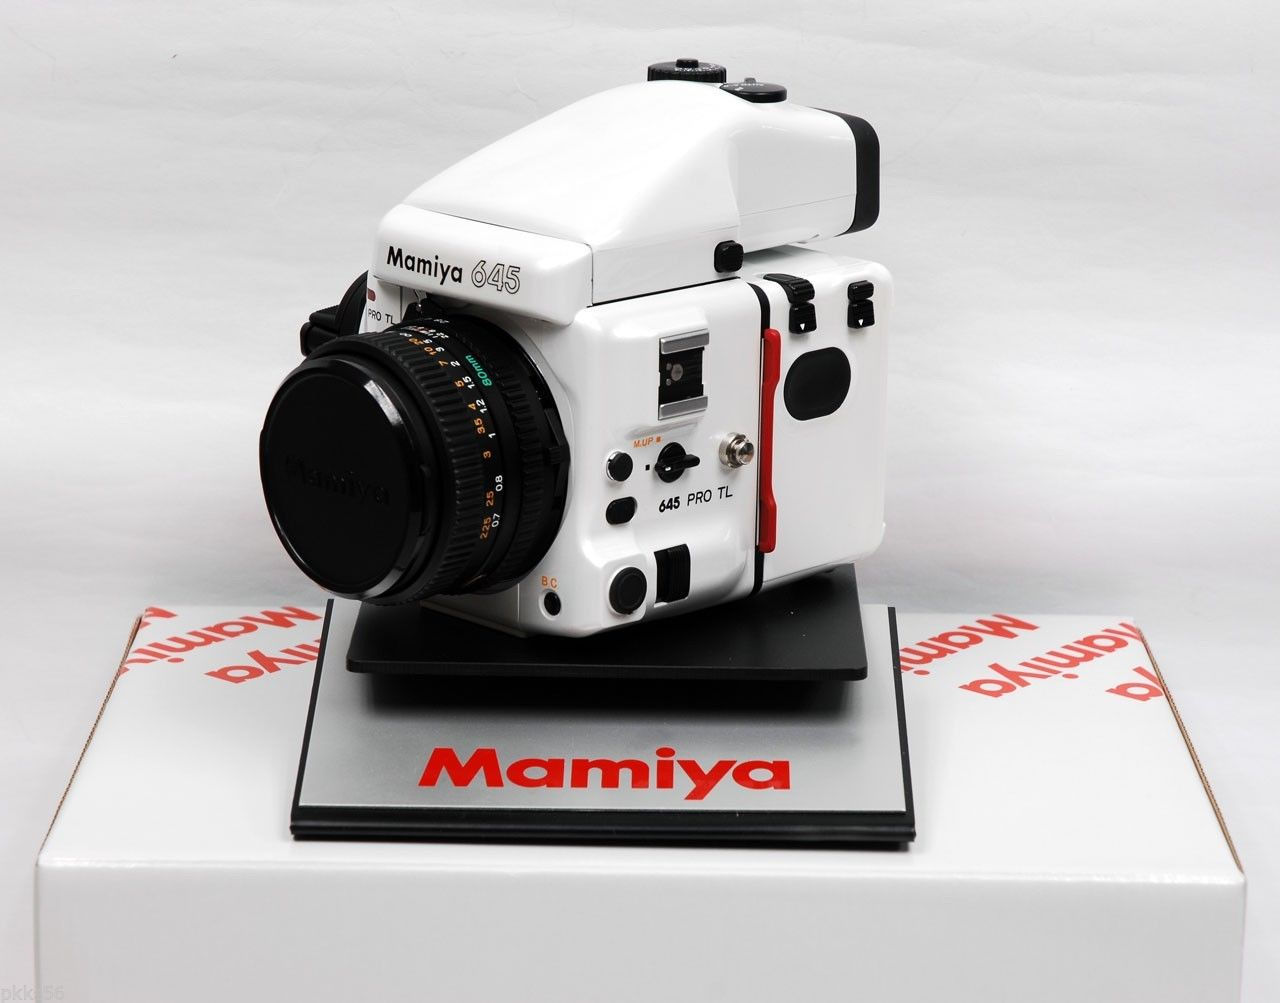 White Mamiya by steve_cor in Regular Member Gallery